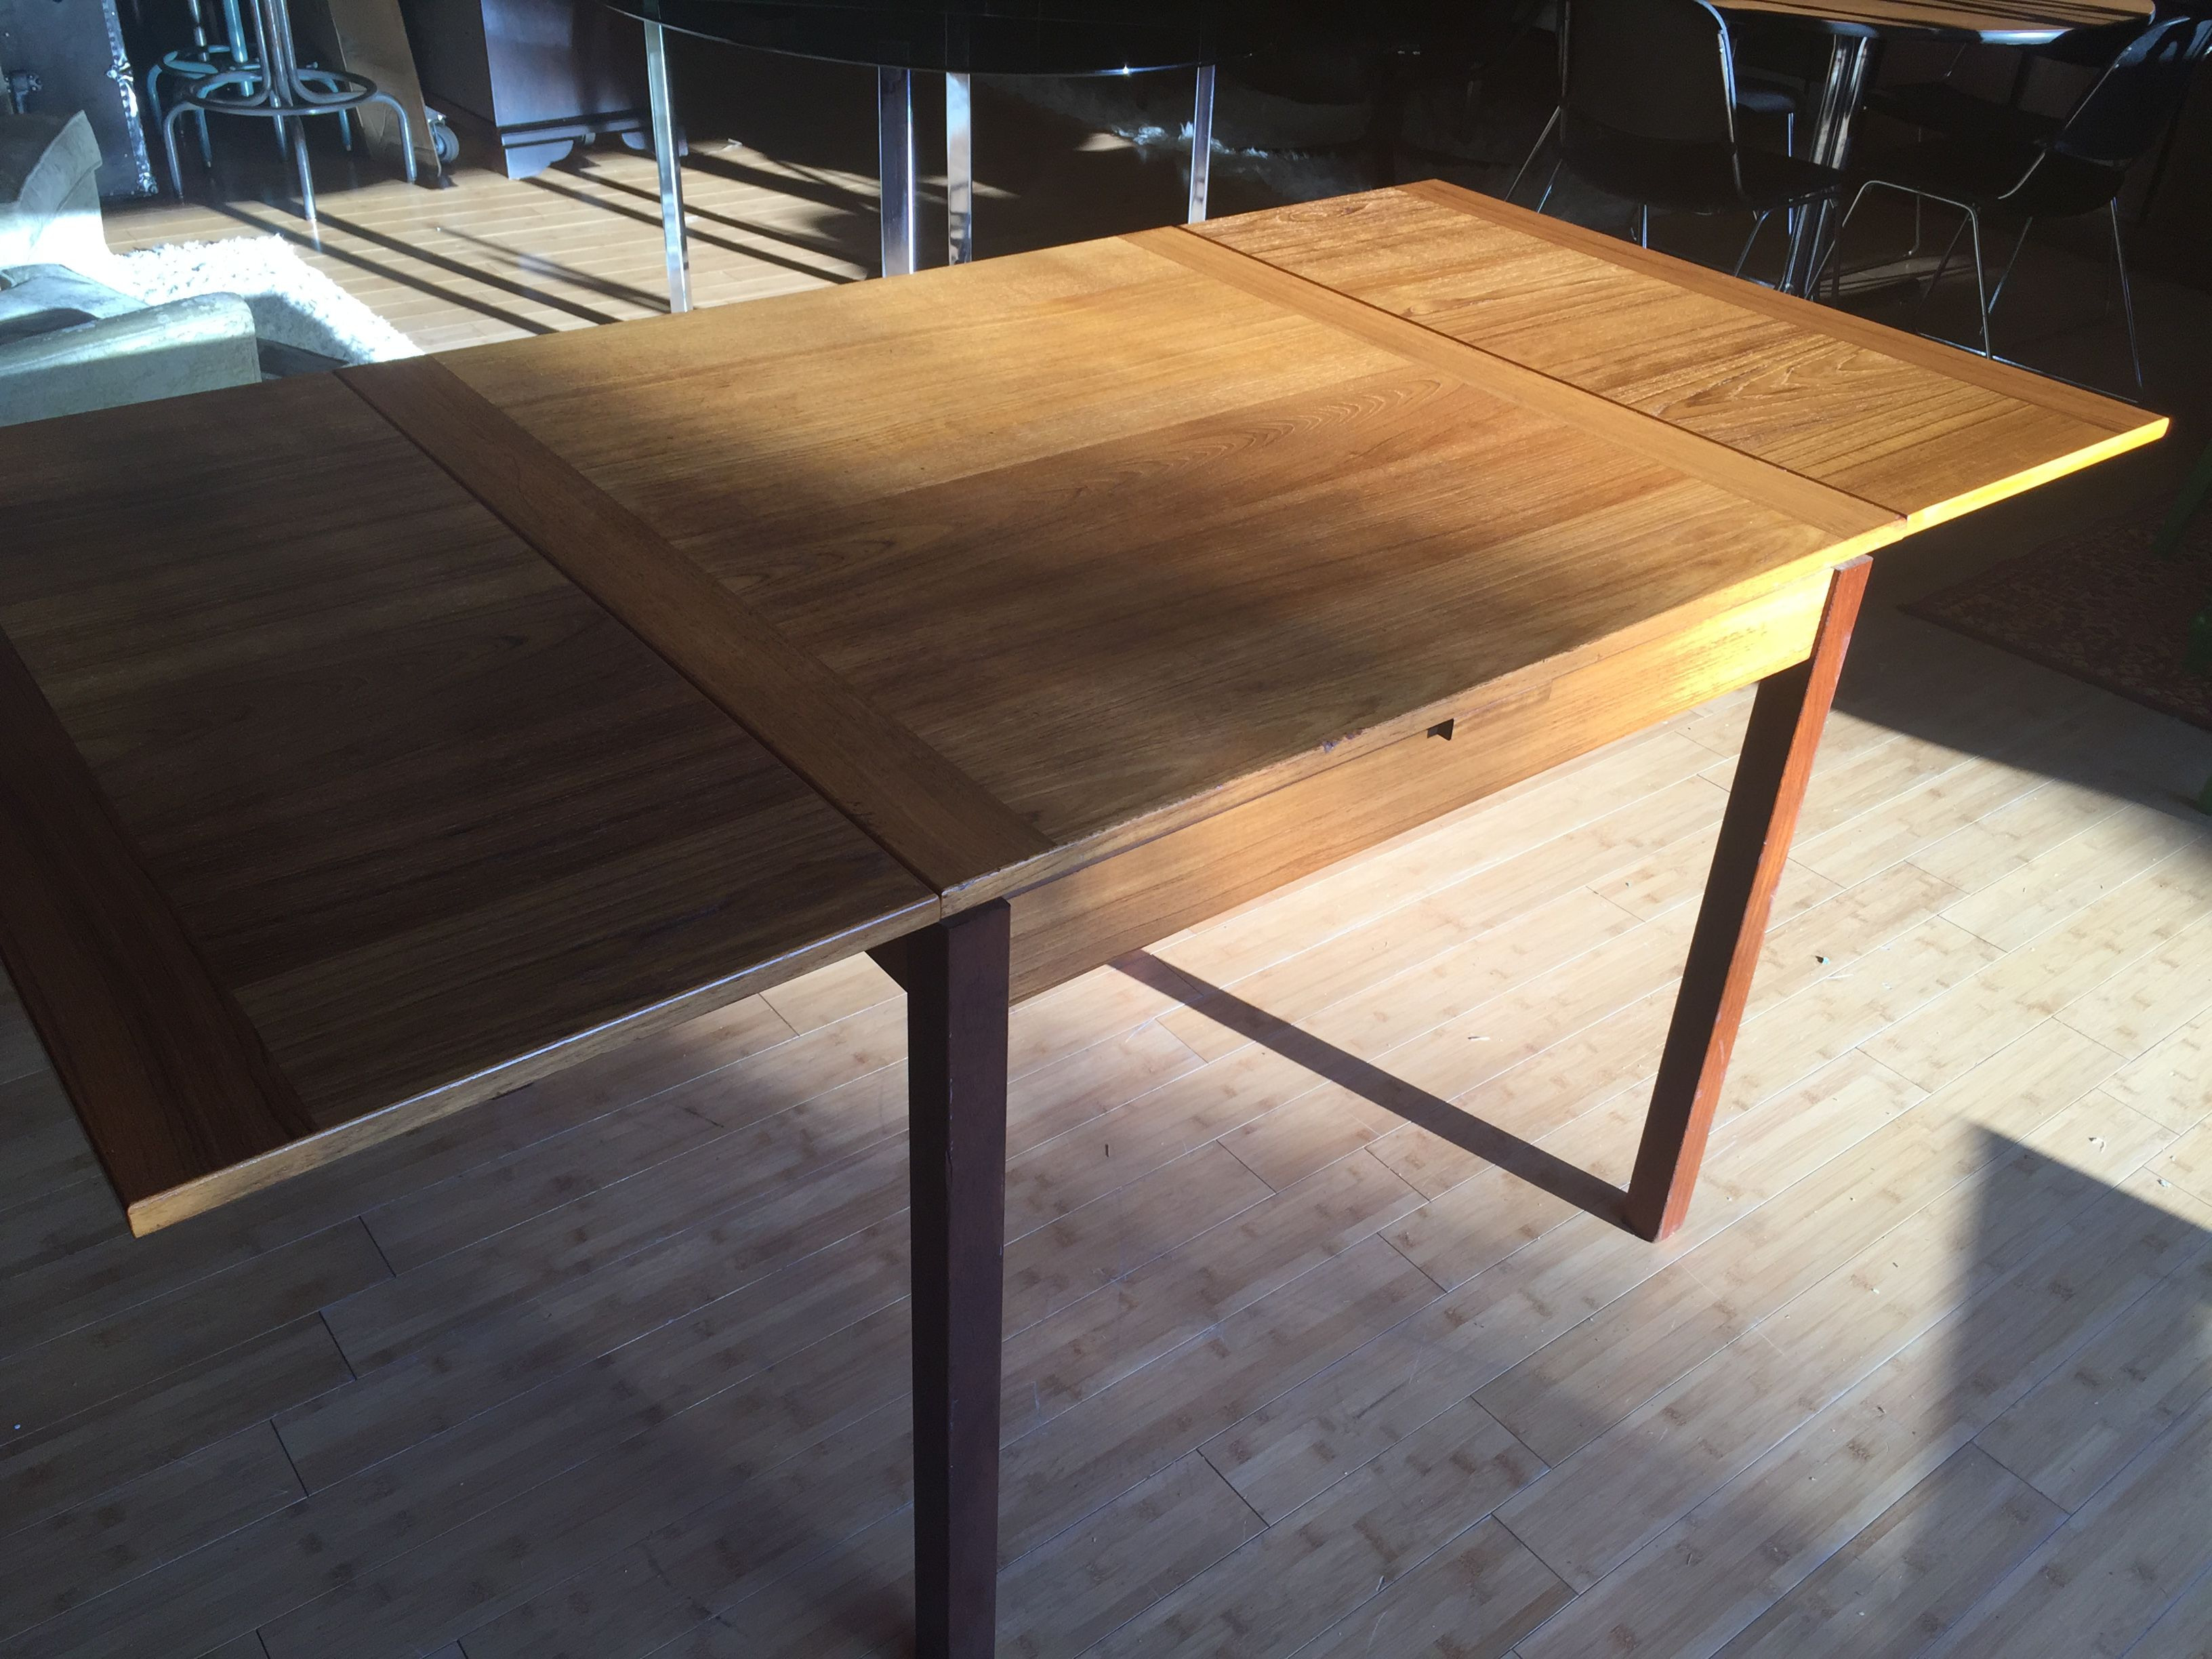 Ansager Mobler Teak Dining Table Made In Denmark For Sale By Moore Treasures Teak Dining Table